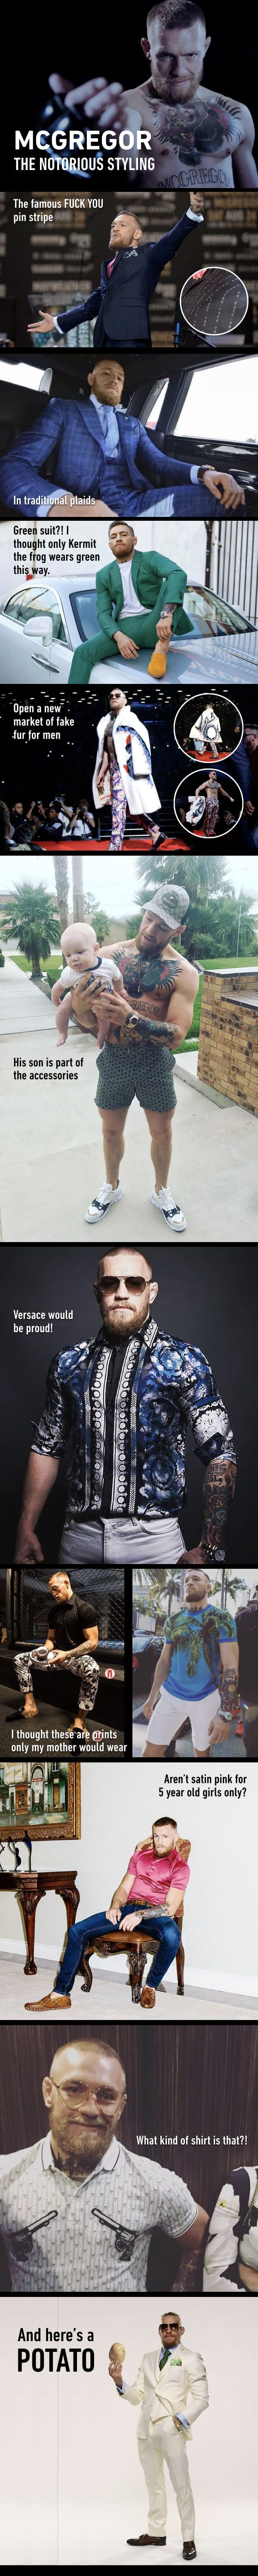 Conor McGregor's Notorious Styling